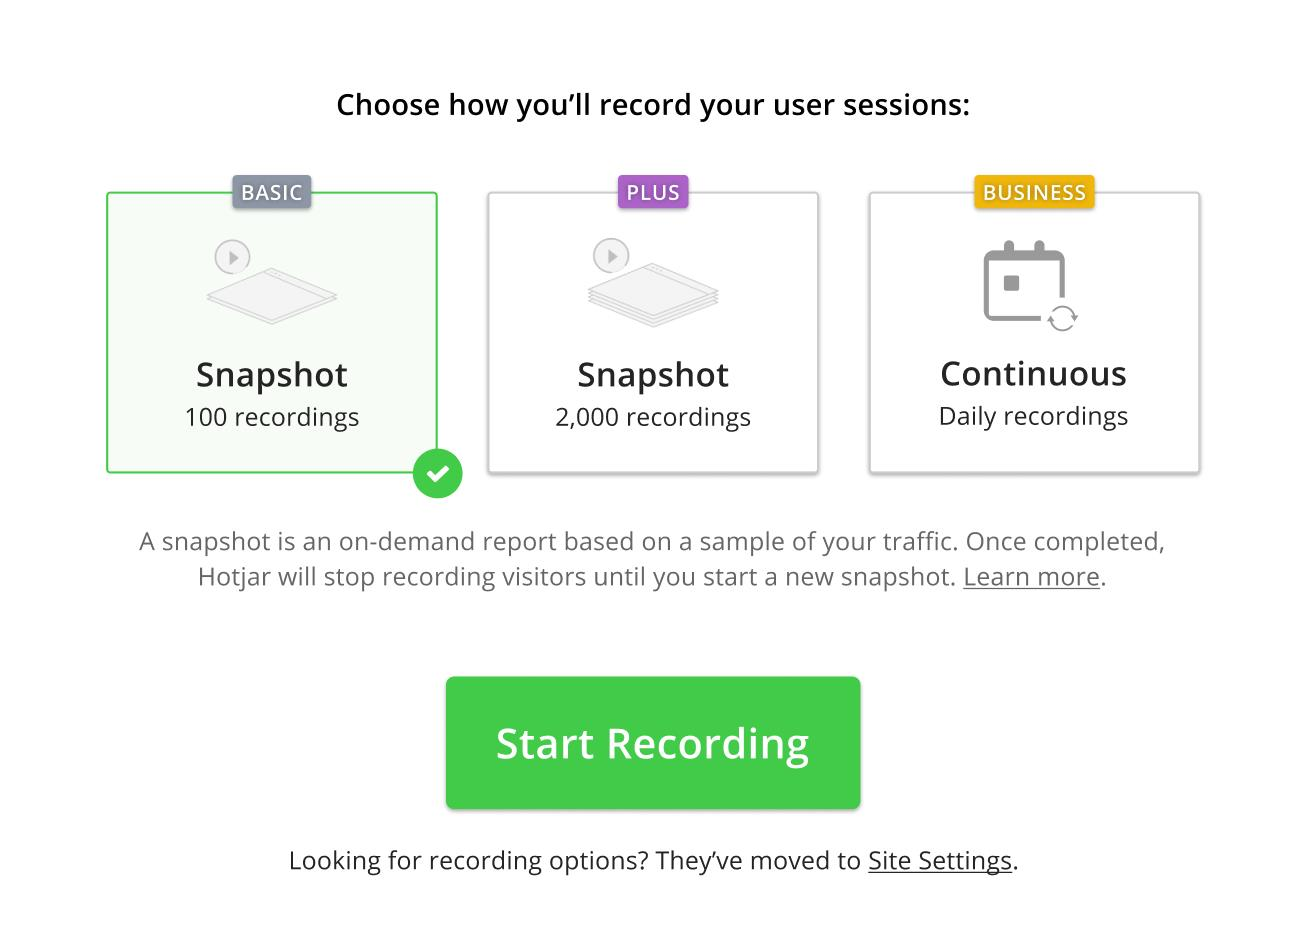 You have 2 options - Basic Snapshots of 100 Recordings, and Plus Snapshots of 2000 Recordings.